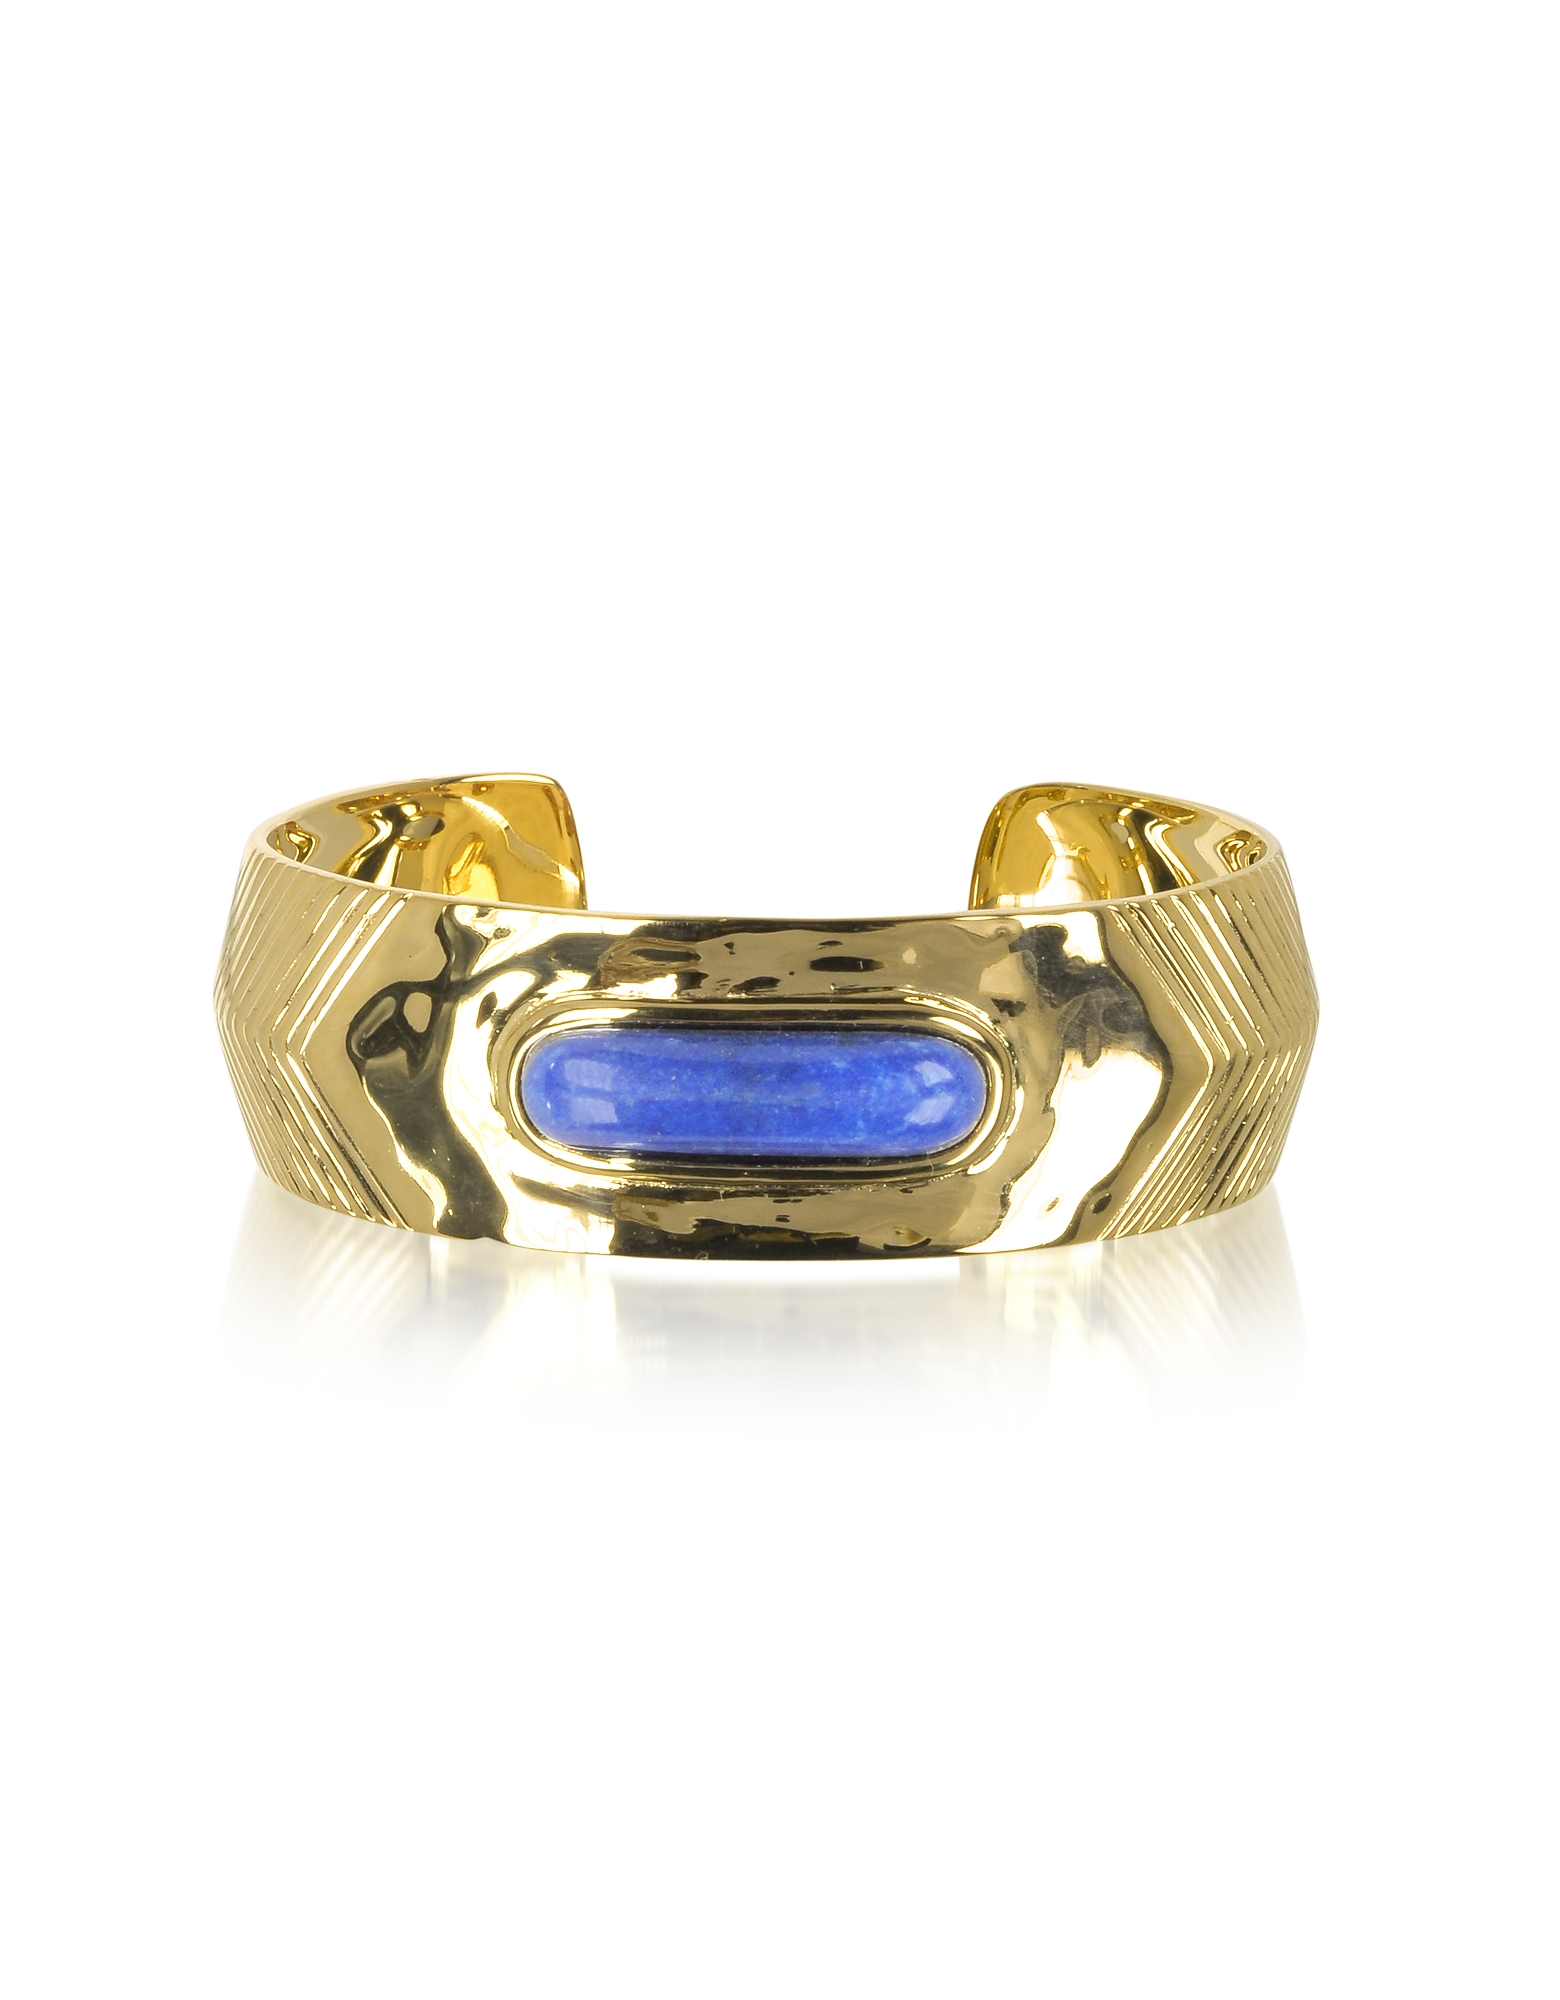 Aurelie Bidermann Bracelets, Peggy 18K Gold-Plated Bangle w/Lapis Lazuli Stone